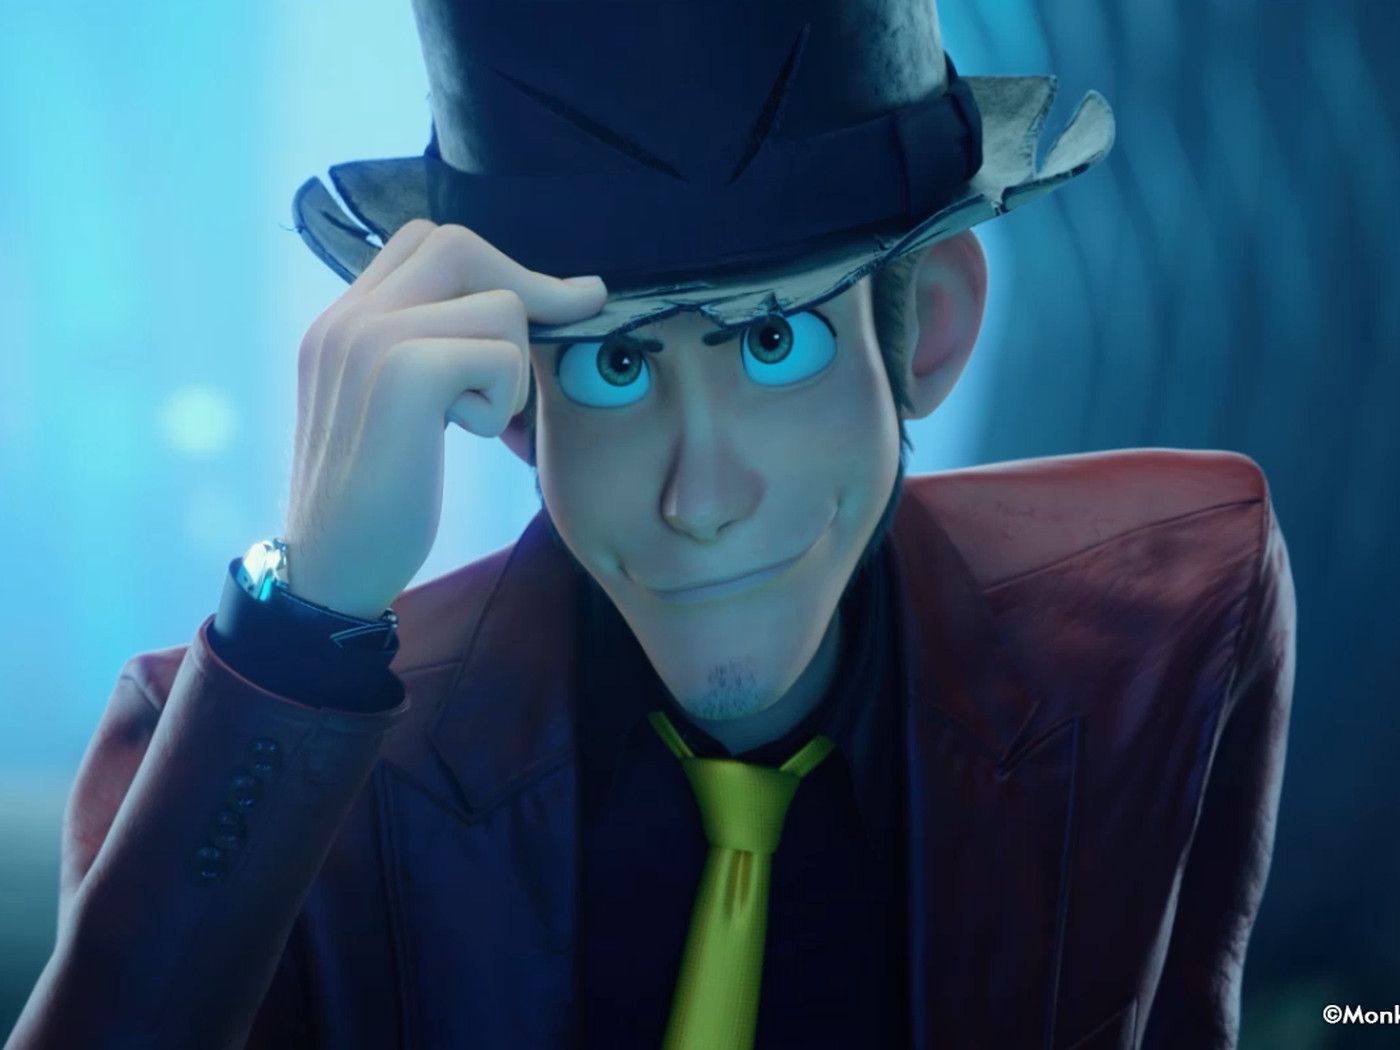 Lupin III: The First review: the perfect holiday adventure - The Verge